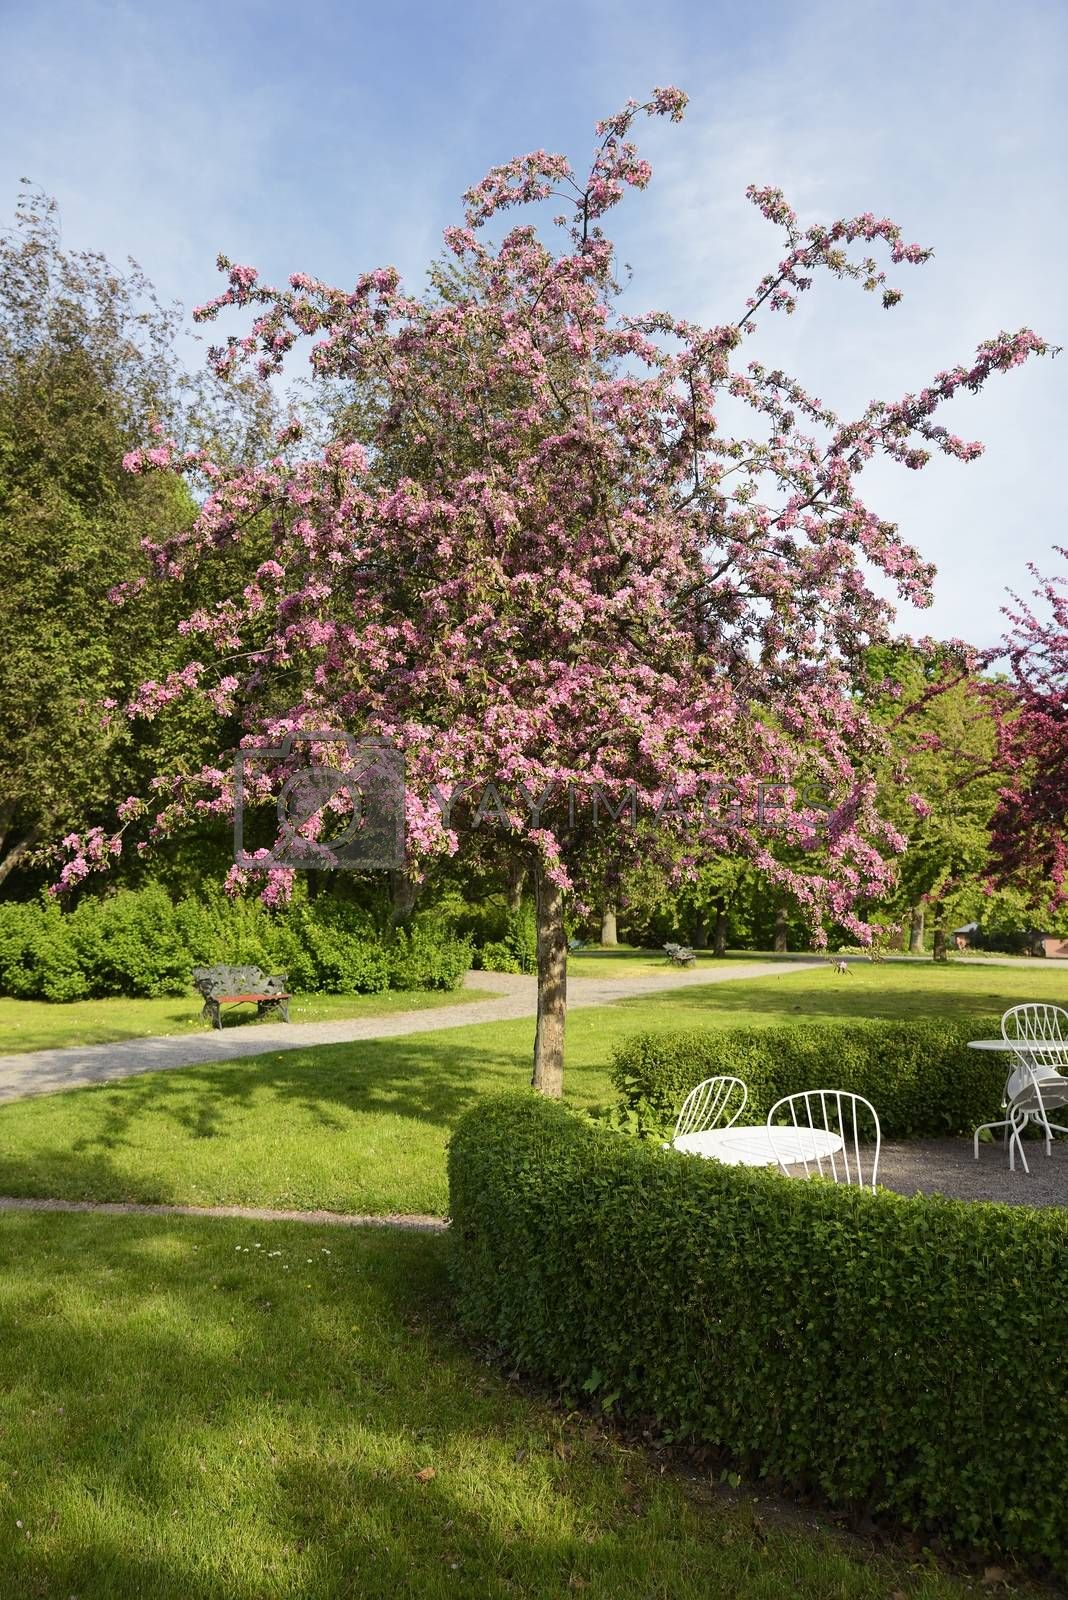 Cherry Blossom in park.